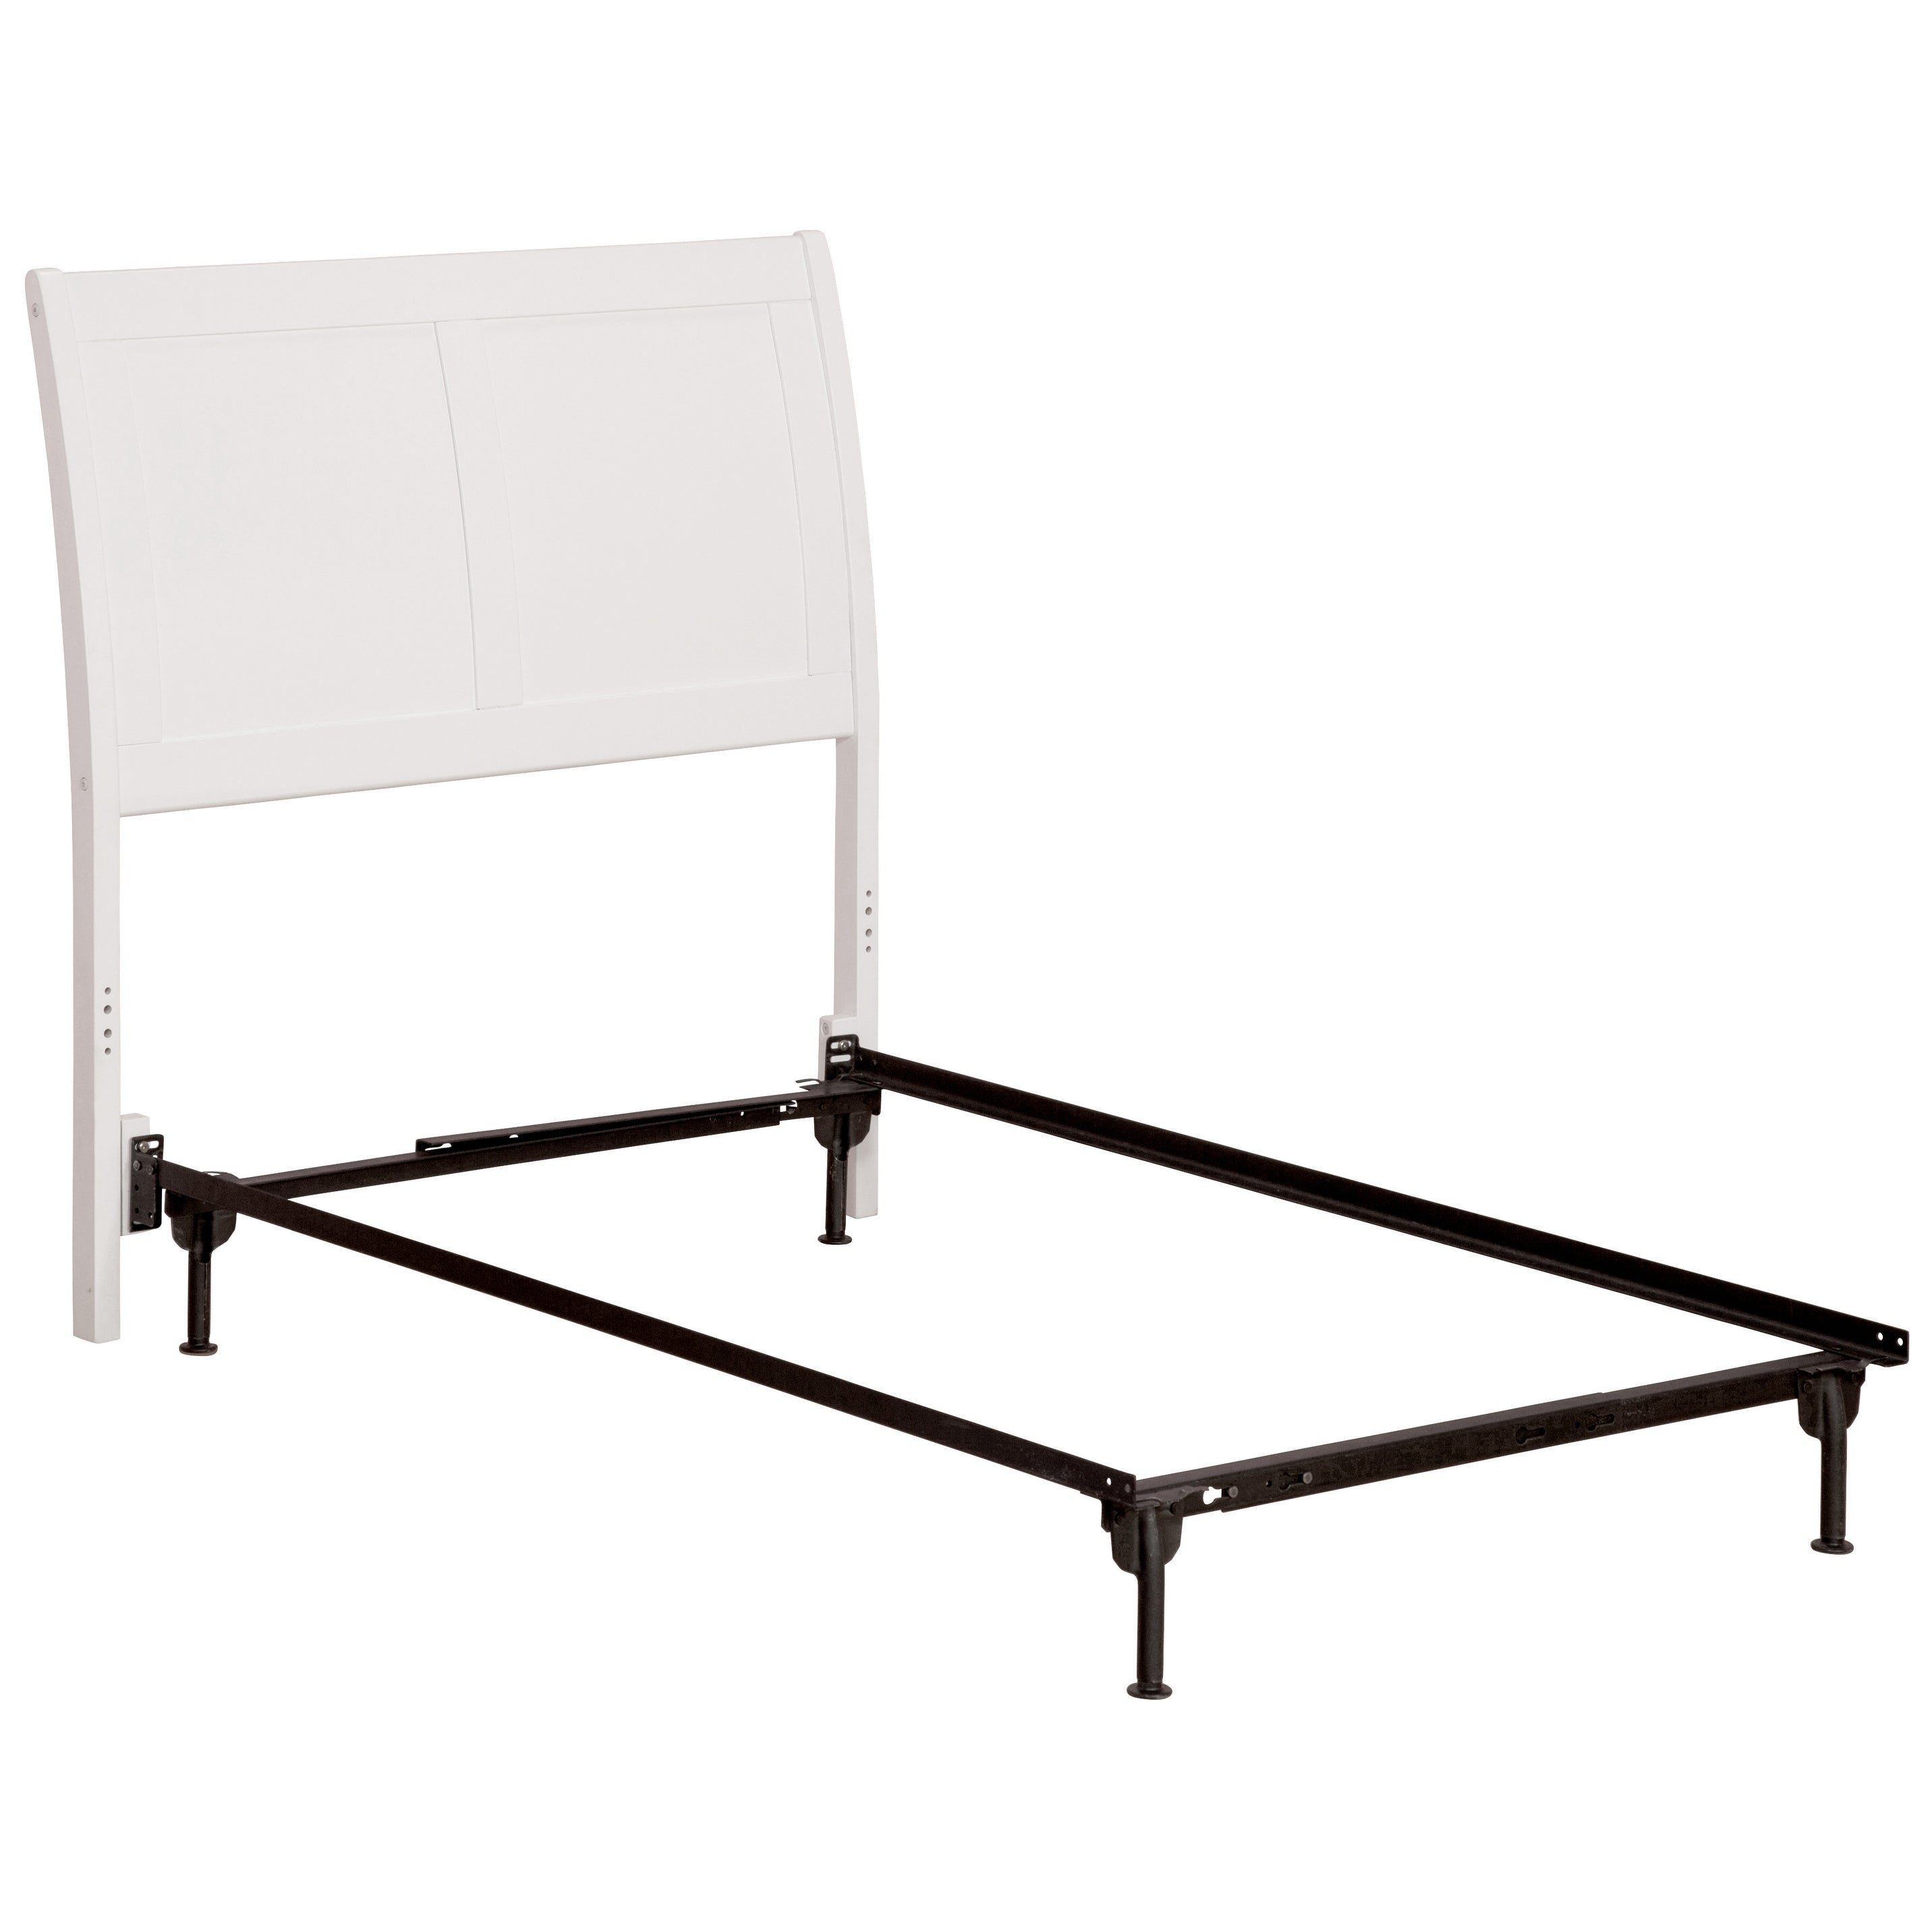 Portland Headboard TW with Metal Bed Frame White White Twin